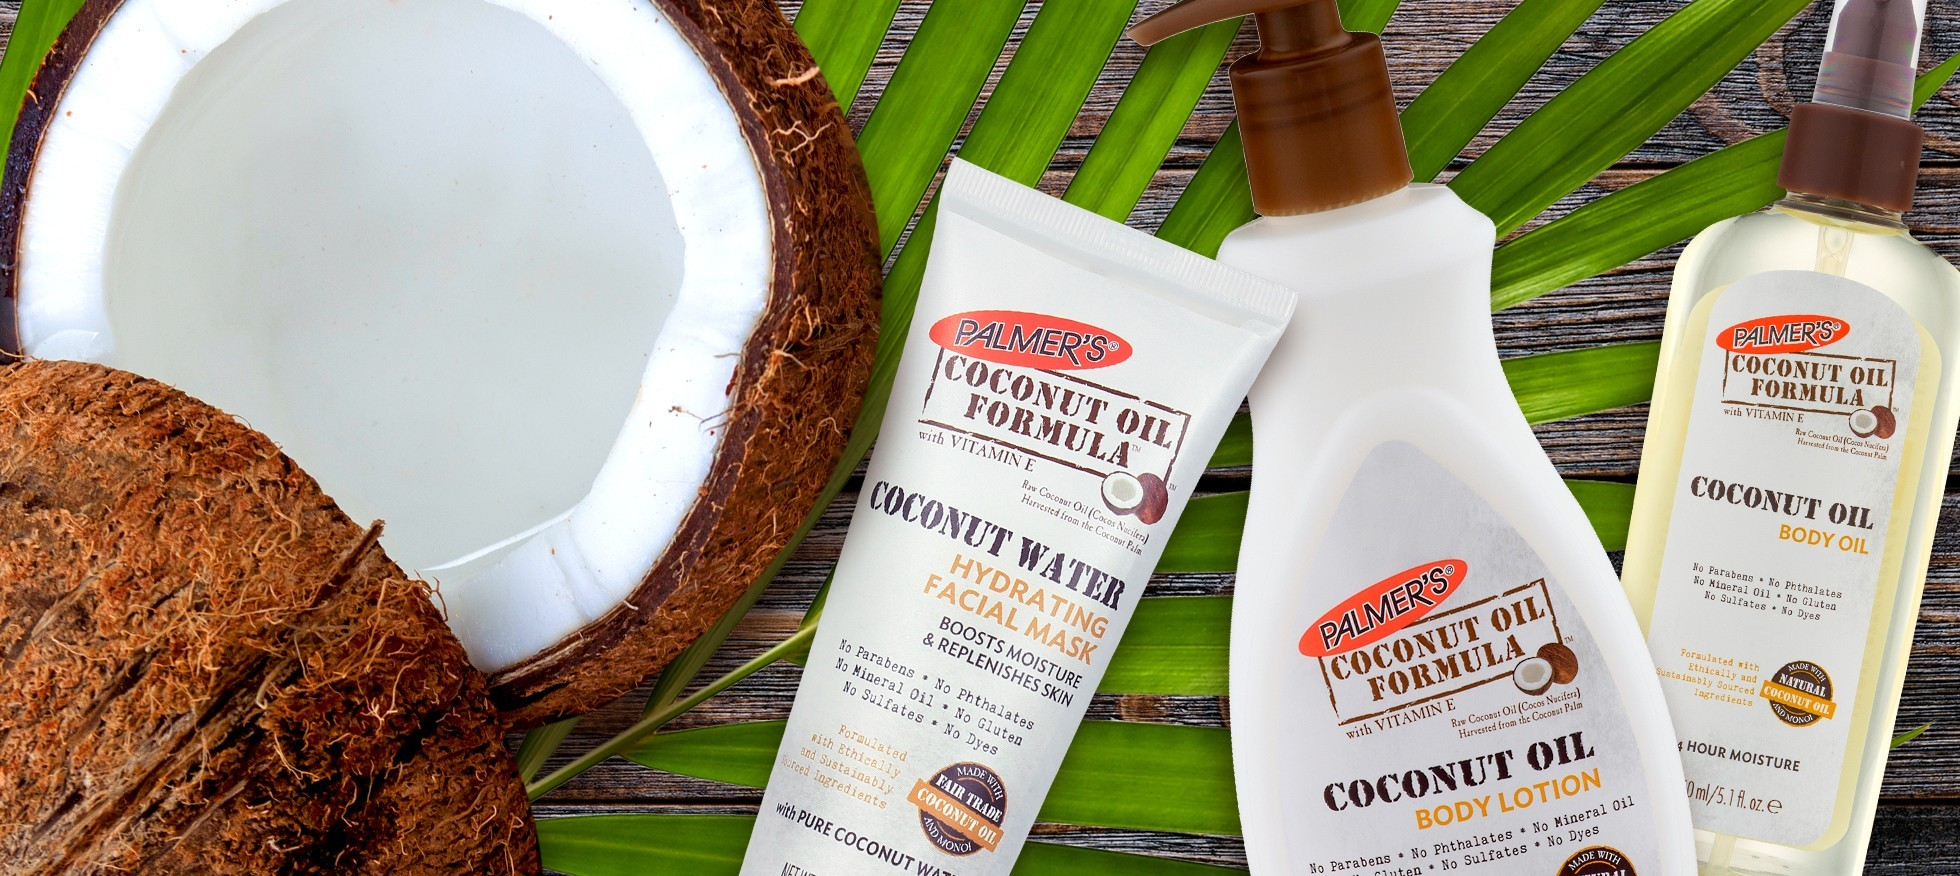 Coconut Oil Formula